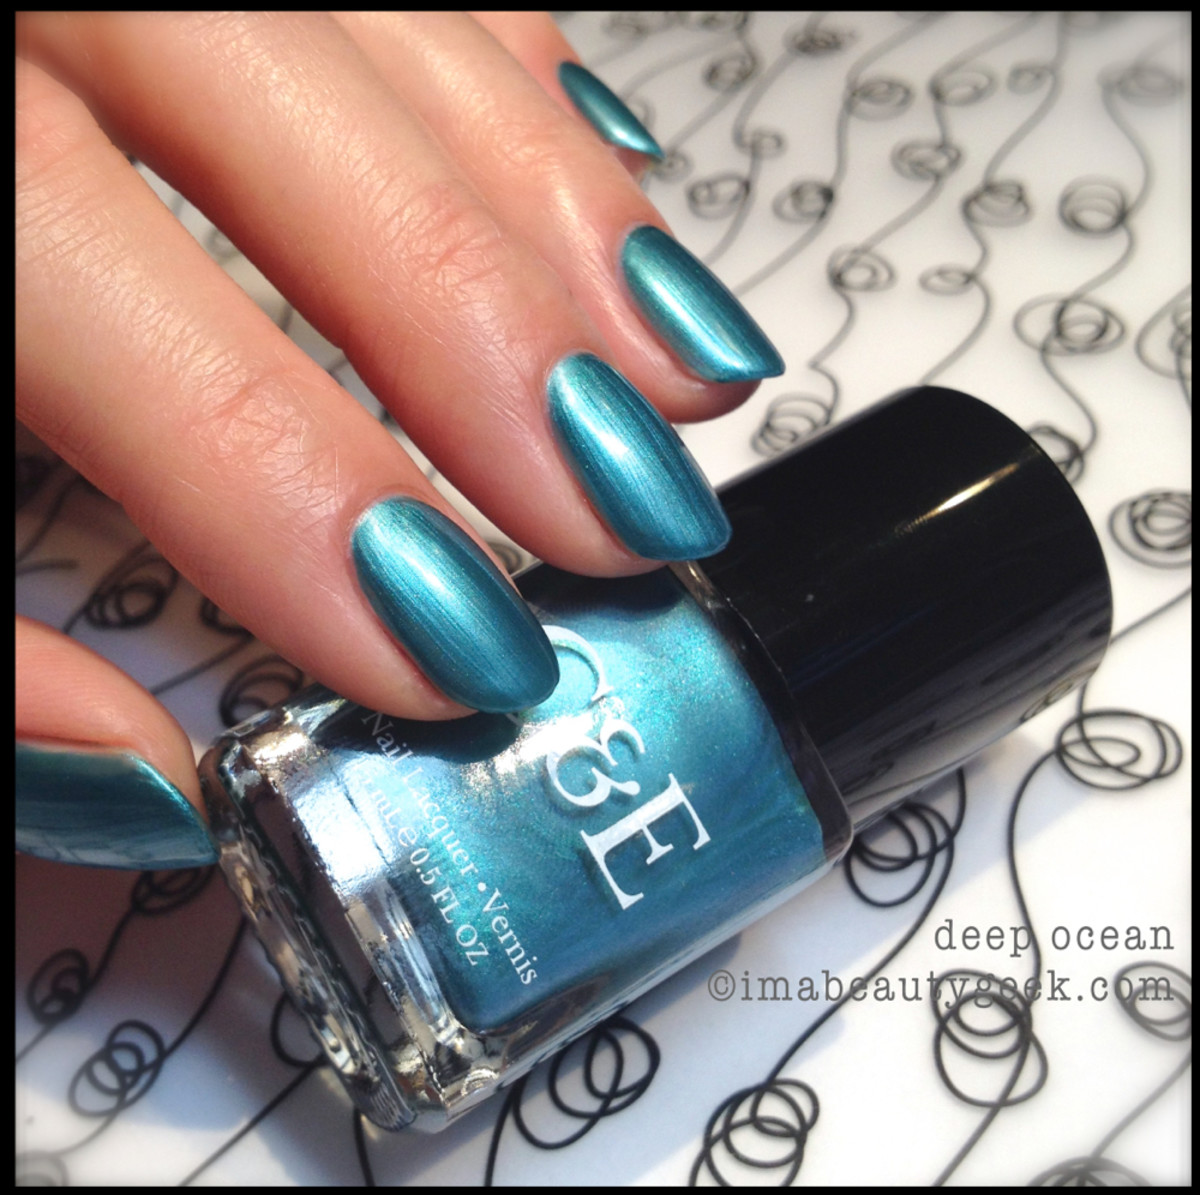 Crabtree & Evelyn Polish Deep Ocean